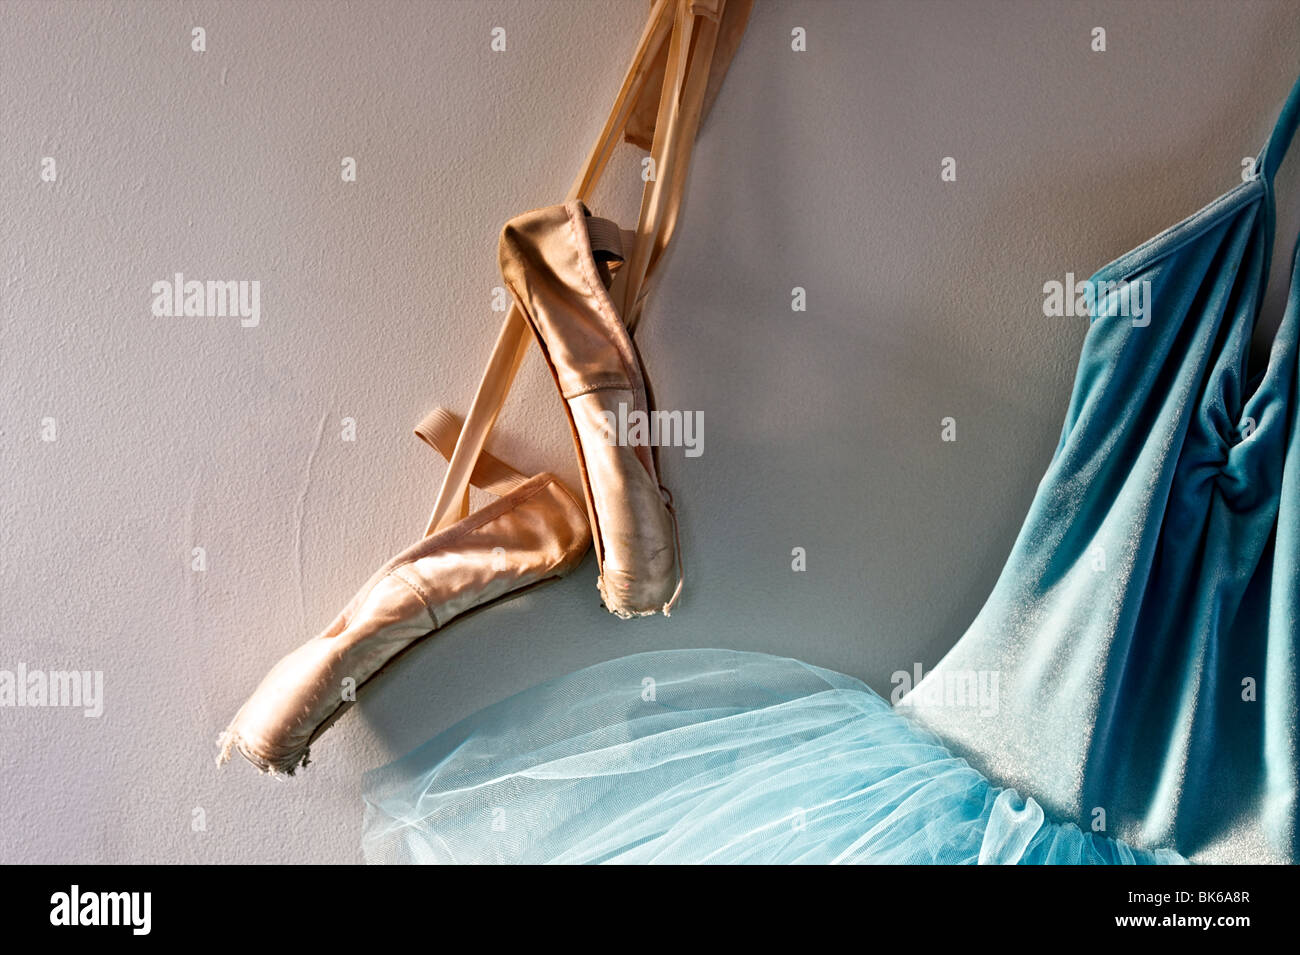 a9adb97181f0 a blue velvet romantic tutu is hanging on a wall beside a worn pair of  ballet